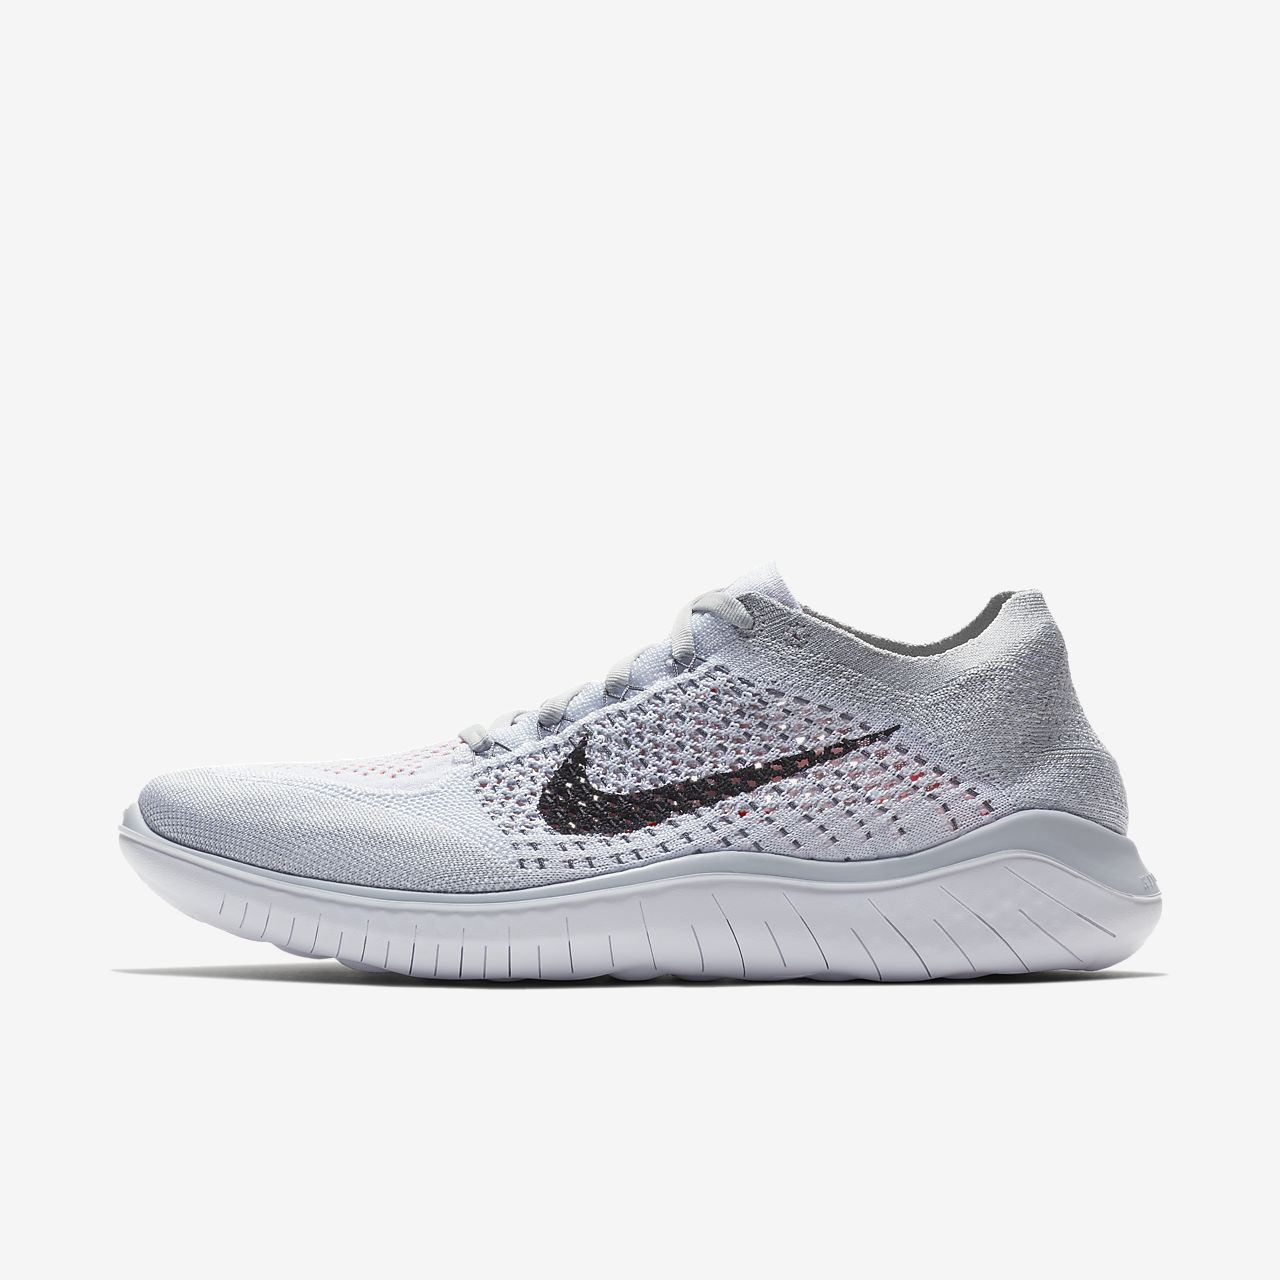 ... Chaussure de running Nike Free RN Flyknit 2018 pour Homme